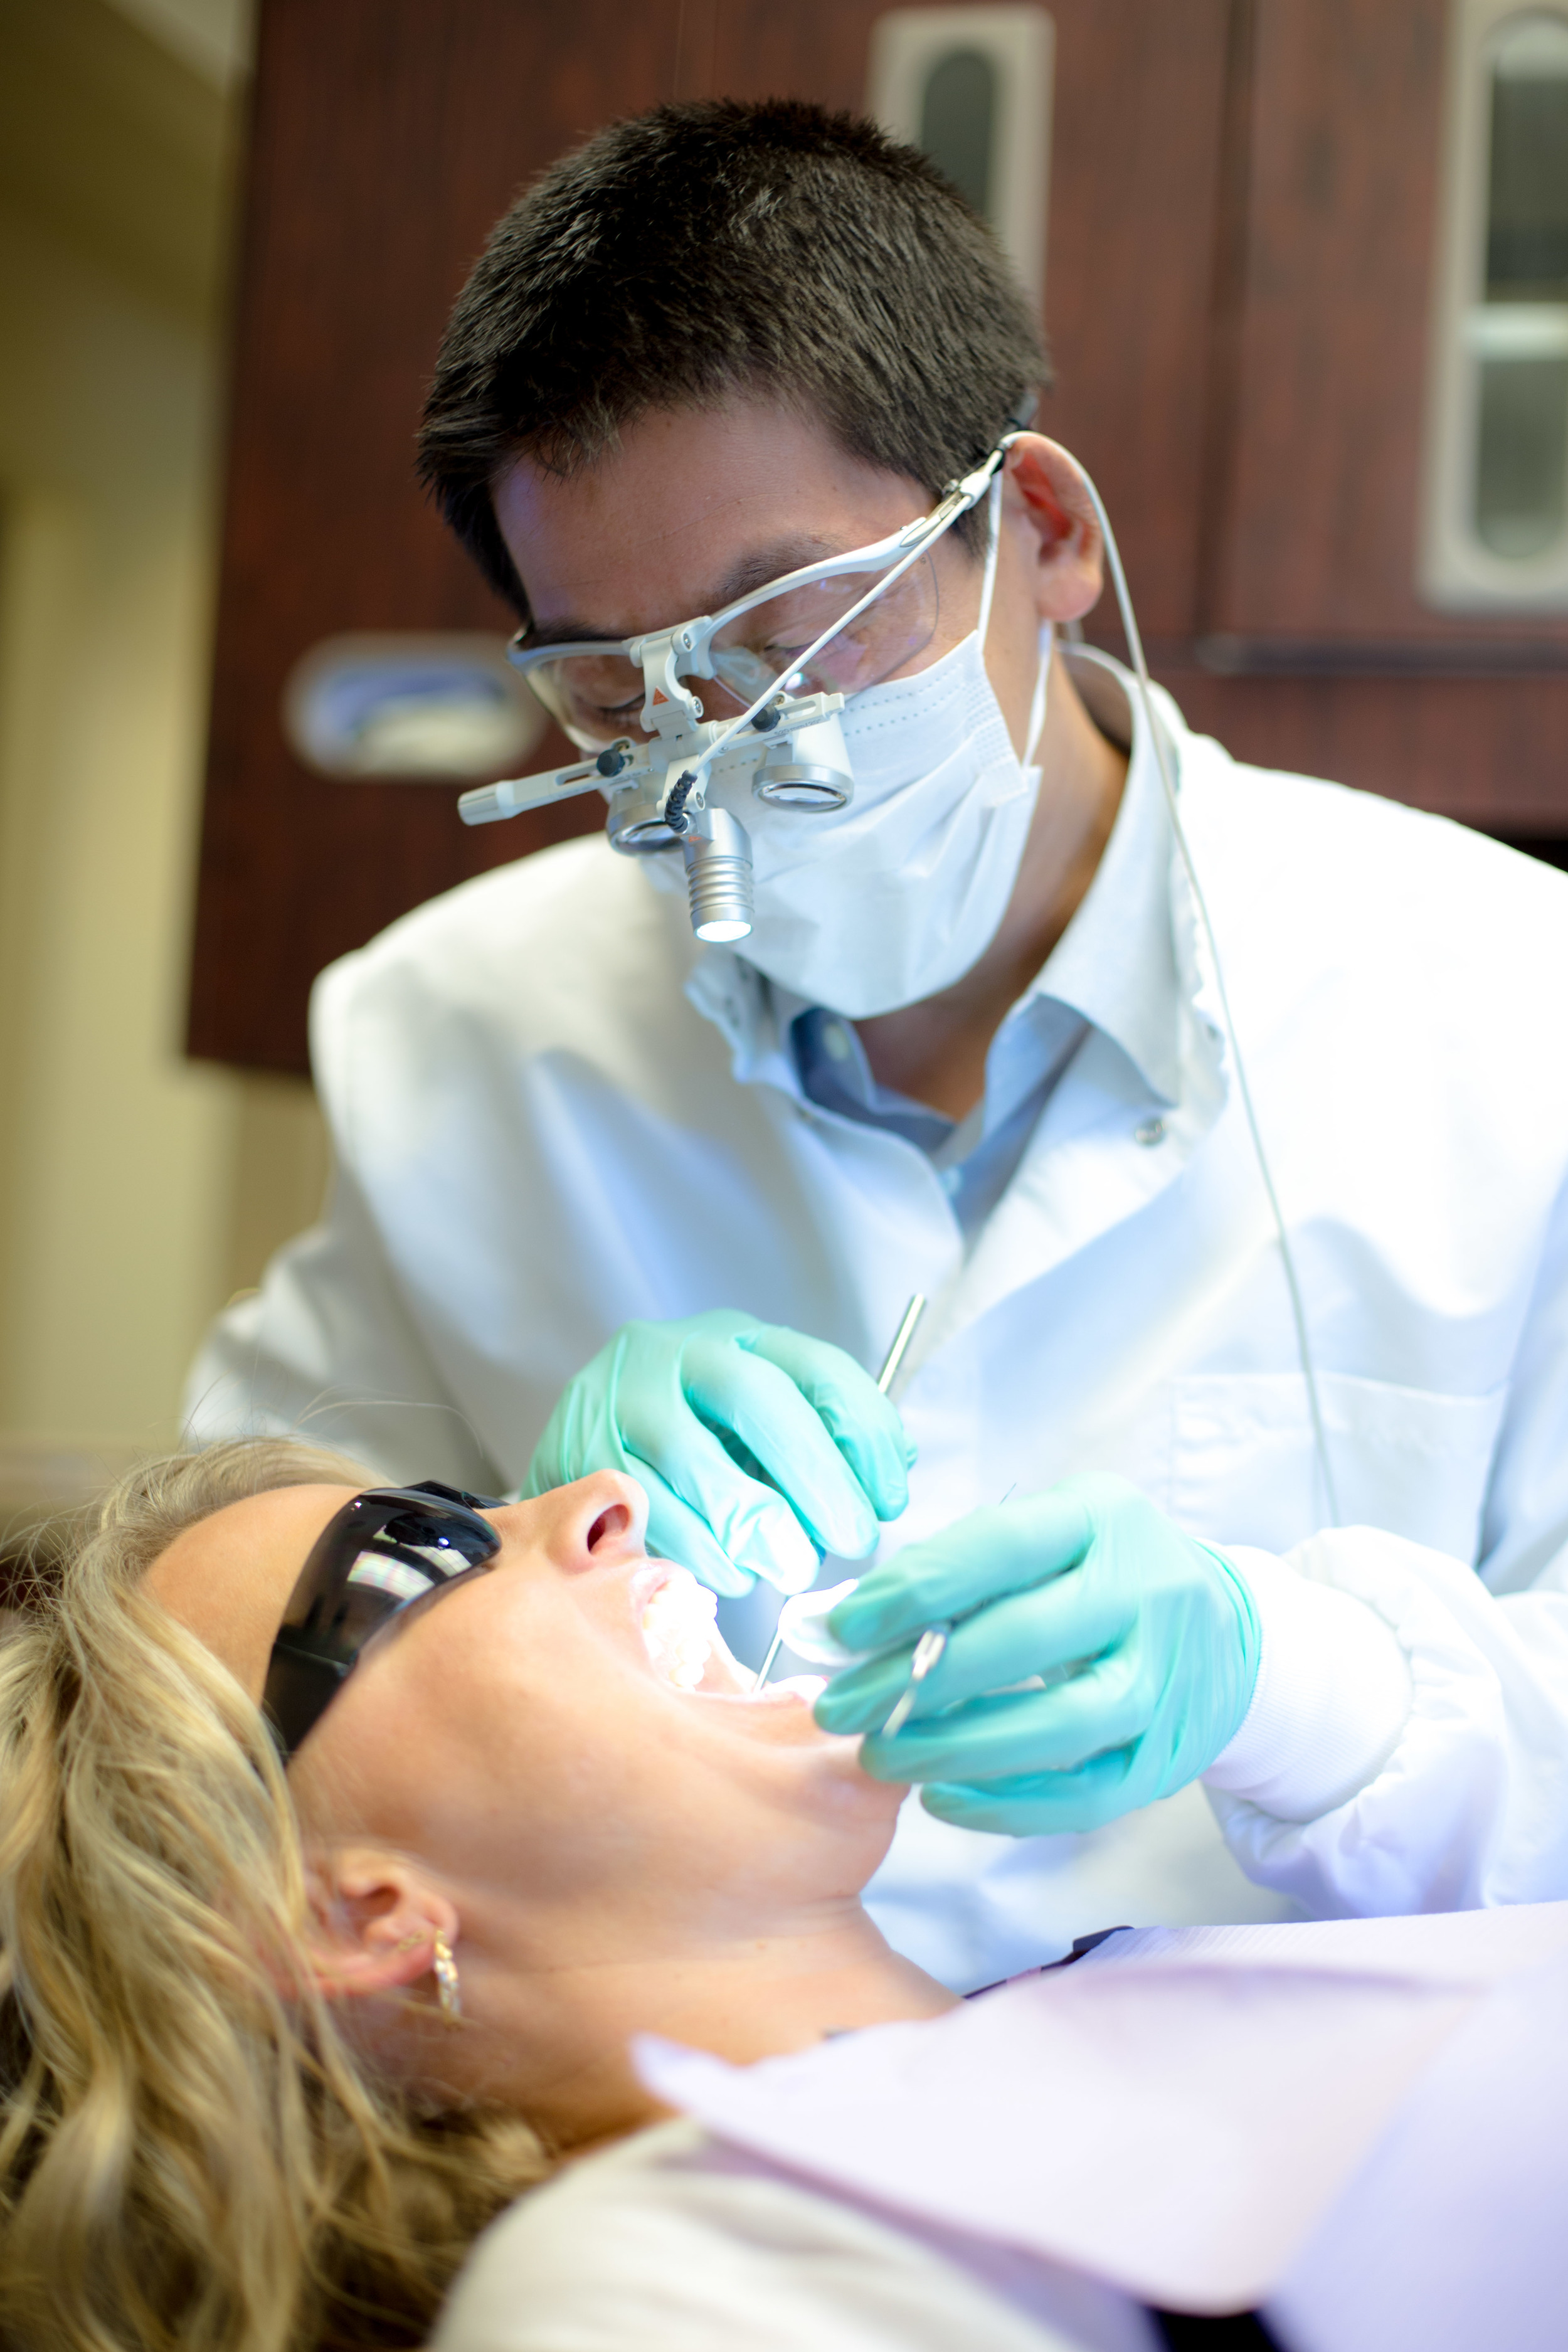 Dr Ryan Chiang working treating a patient at Bellevue Dental Arts